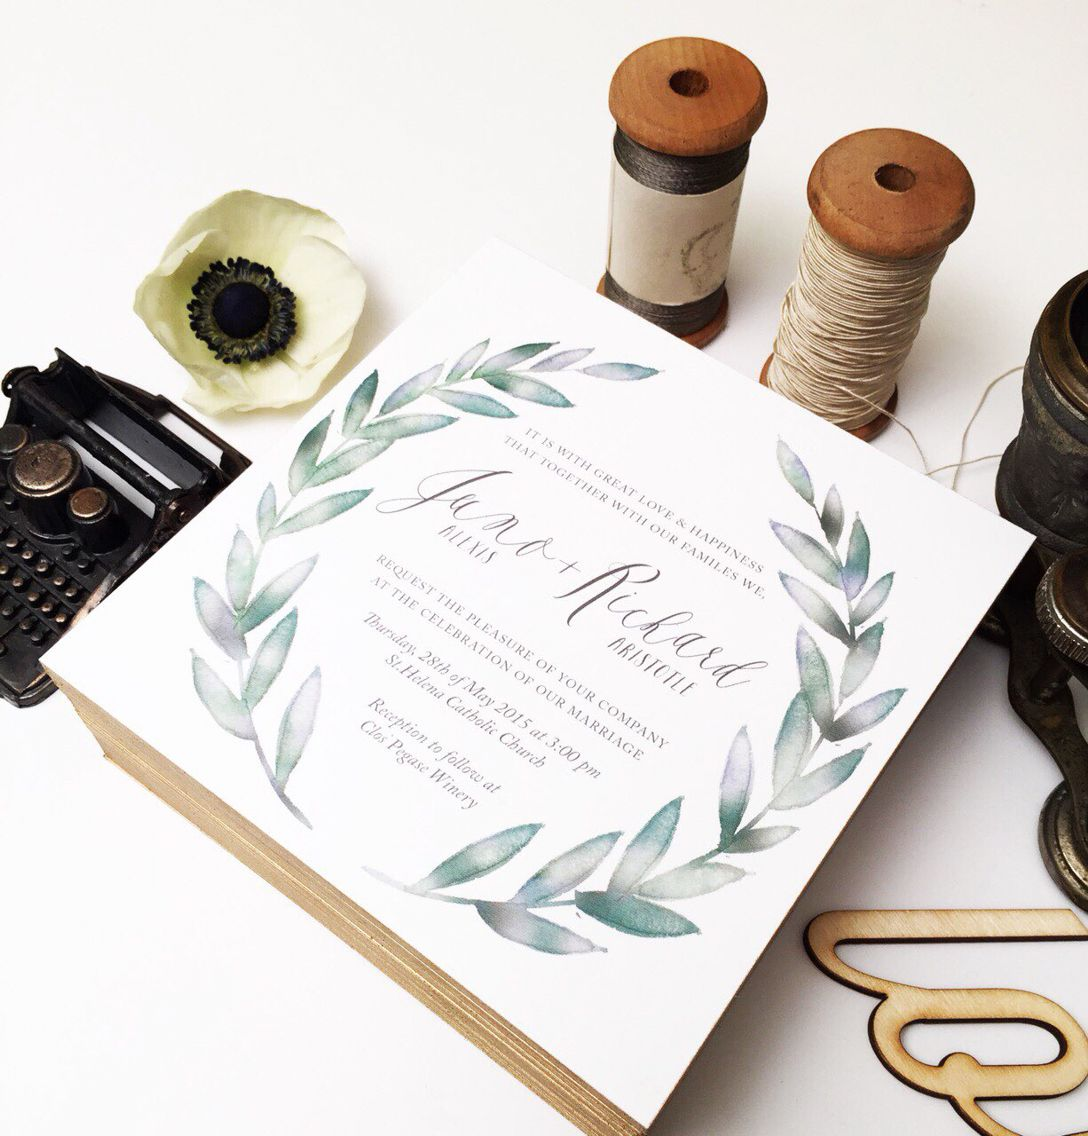 Thick board invitations with gold edges, design and wording from arrow creative. Simple and sweet! #weddinginvitation #wedding #modernrustic